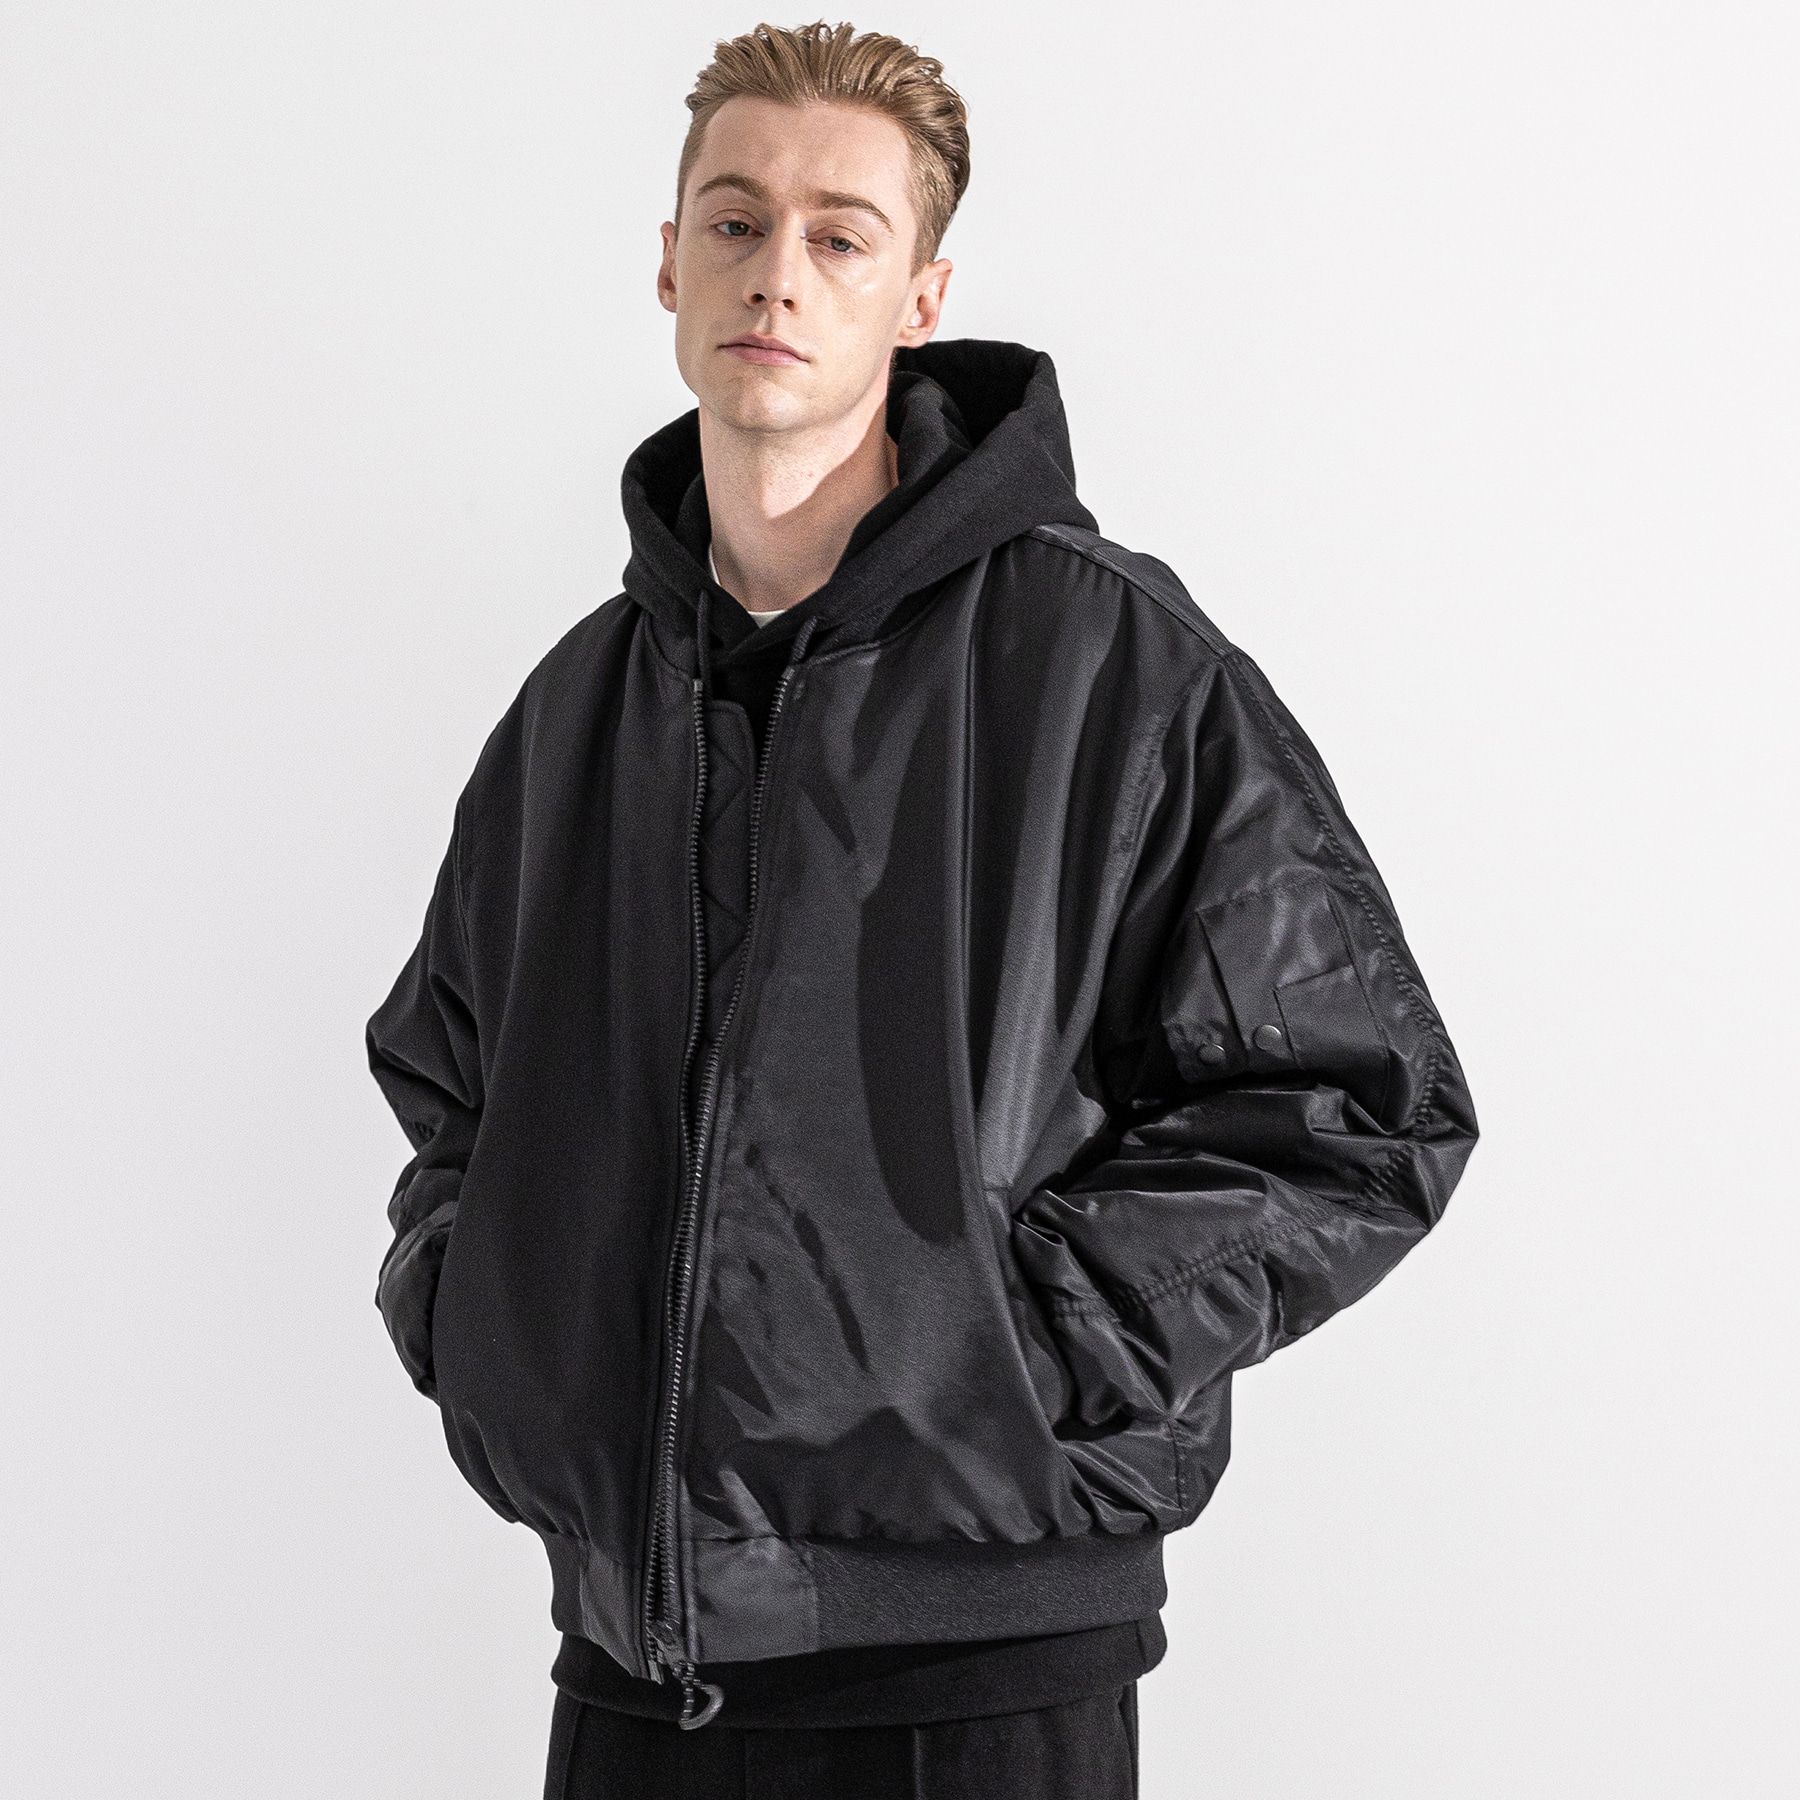 6OZ SHIRRING OVERSIZED MA-1 JACKET MWZPD002-BK